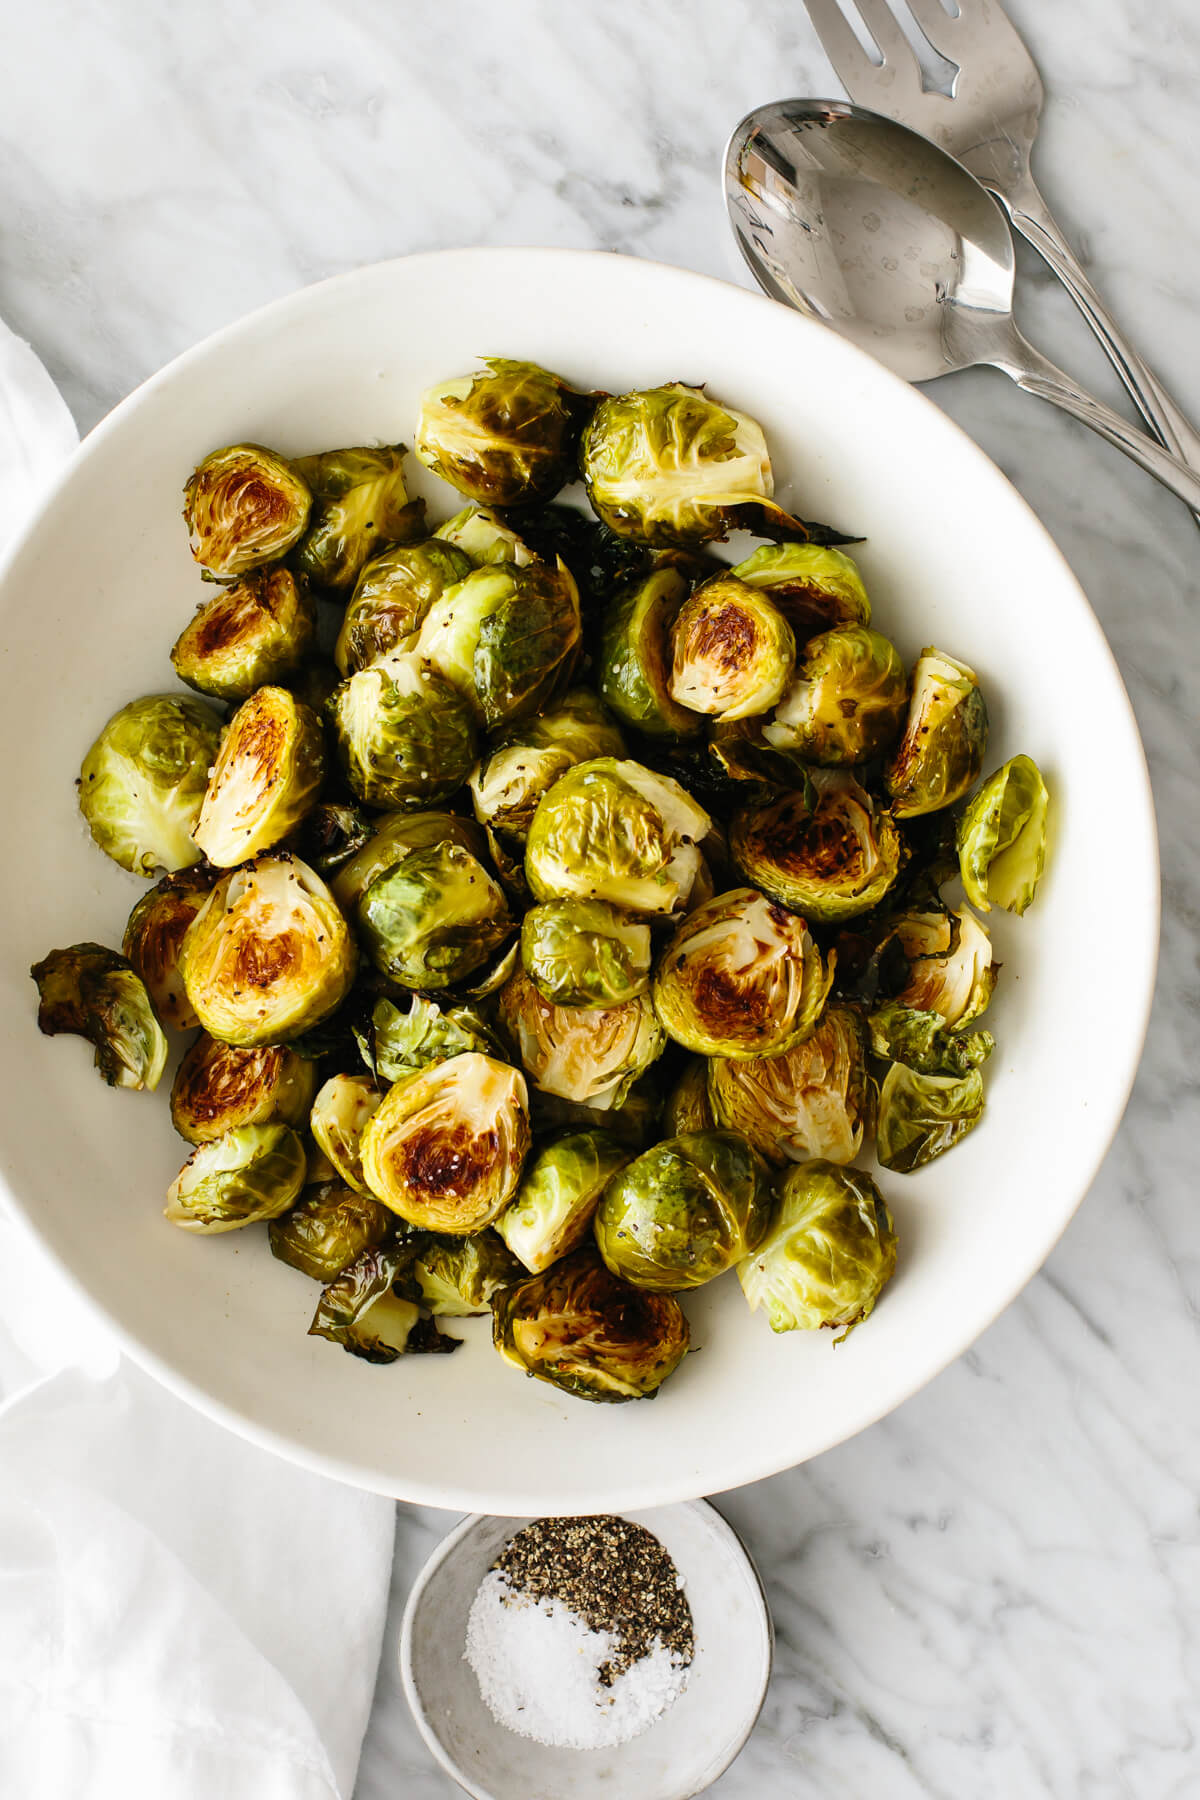 Roasted Brussels sprouts in a bowl on a table.